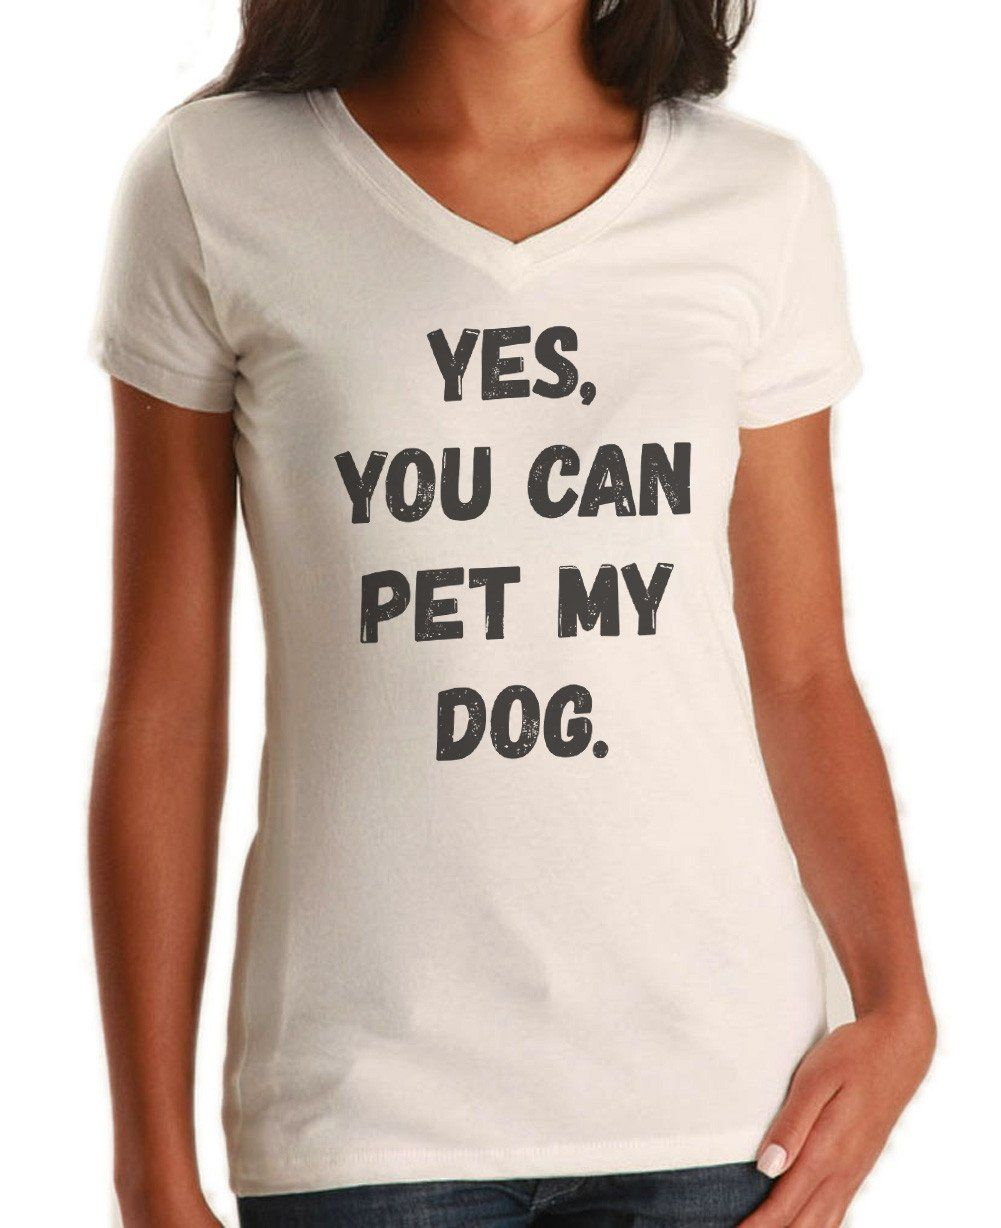 edd066c67 If you're a proud dog dad or dog mom, you know every passerby wants to pet  your pup. Let fellow dog lovers know your dog loves a good petting with  this ...